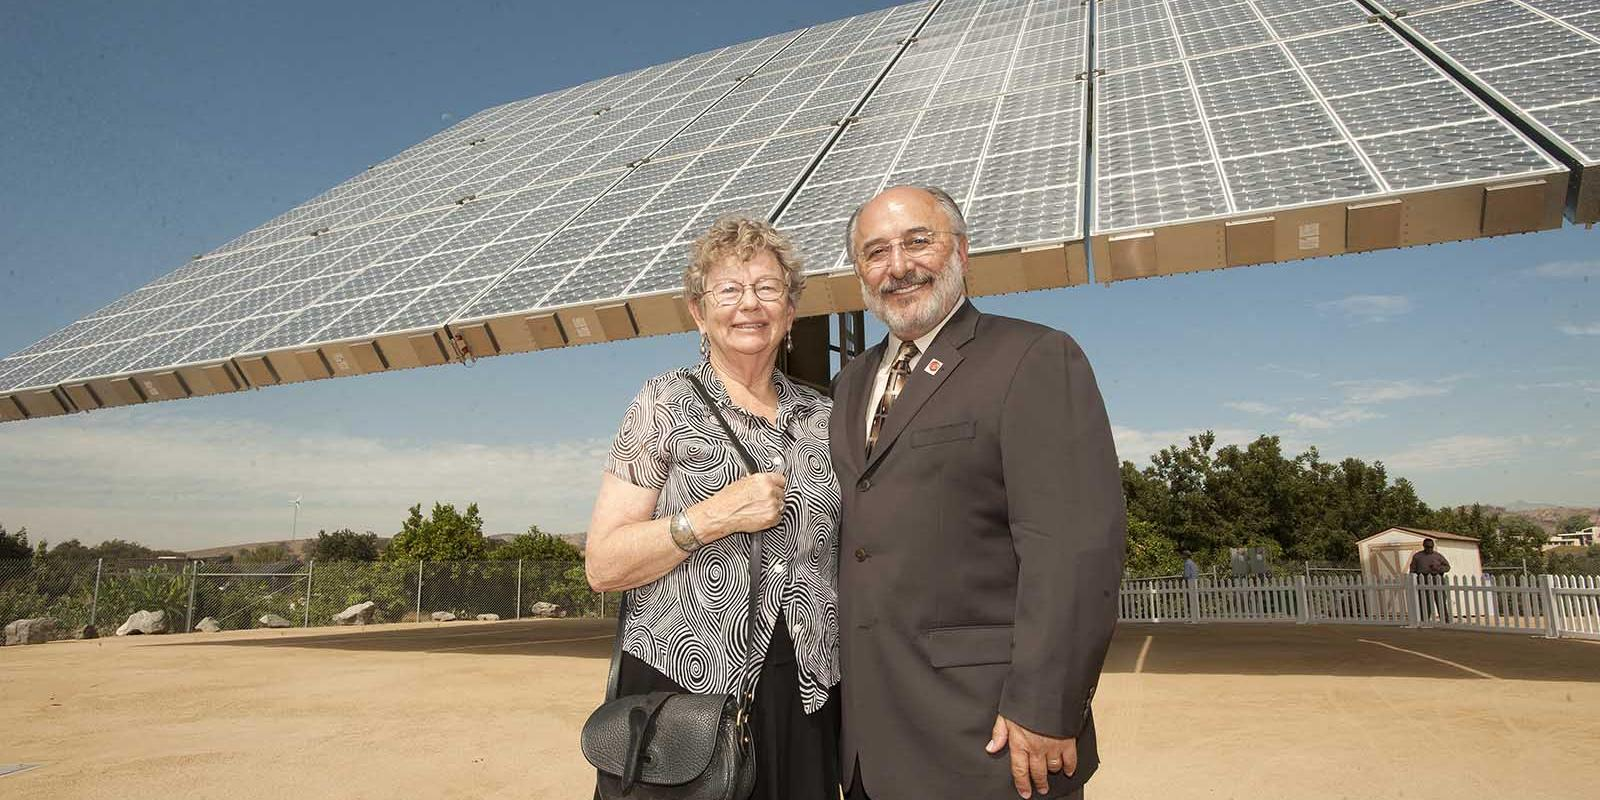 Harriett Lyle, widow of John T. Lyle, and former Cal Poly Pomona President Michael Ortiz during flip the switch ceremony for its new Amonix 7700 solar panel system at the Lyle Center, September 2010